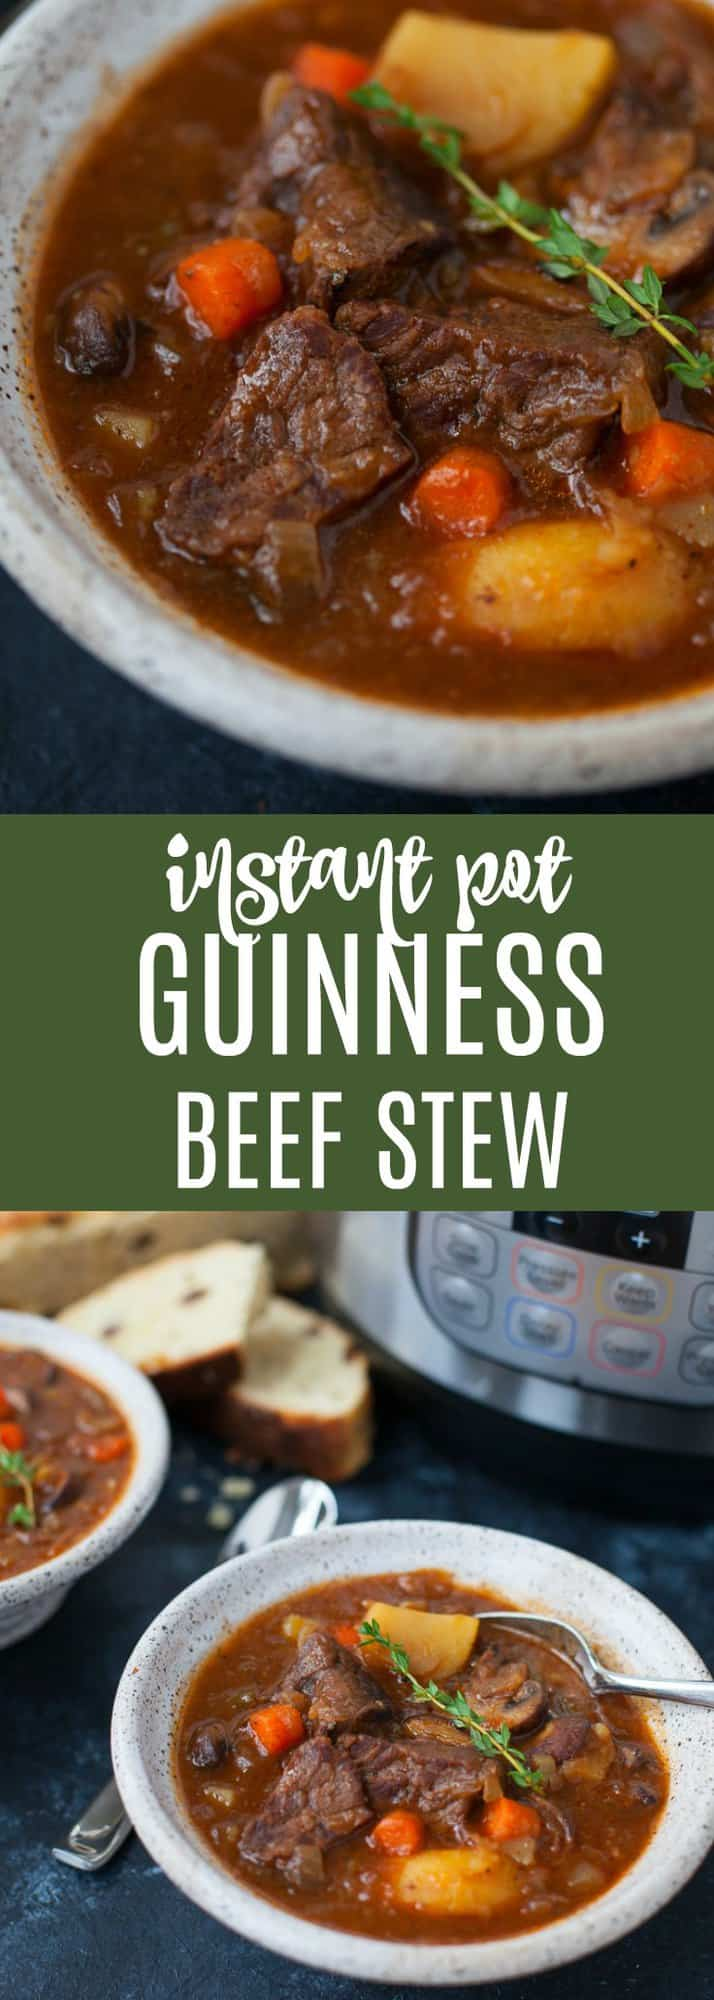 Super hearty and inherently Irish, this Instant Pot Guinness Beef Stew is the perfect recipe for a St. Patrick's Day feast.